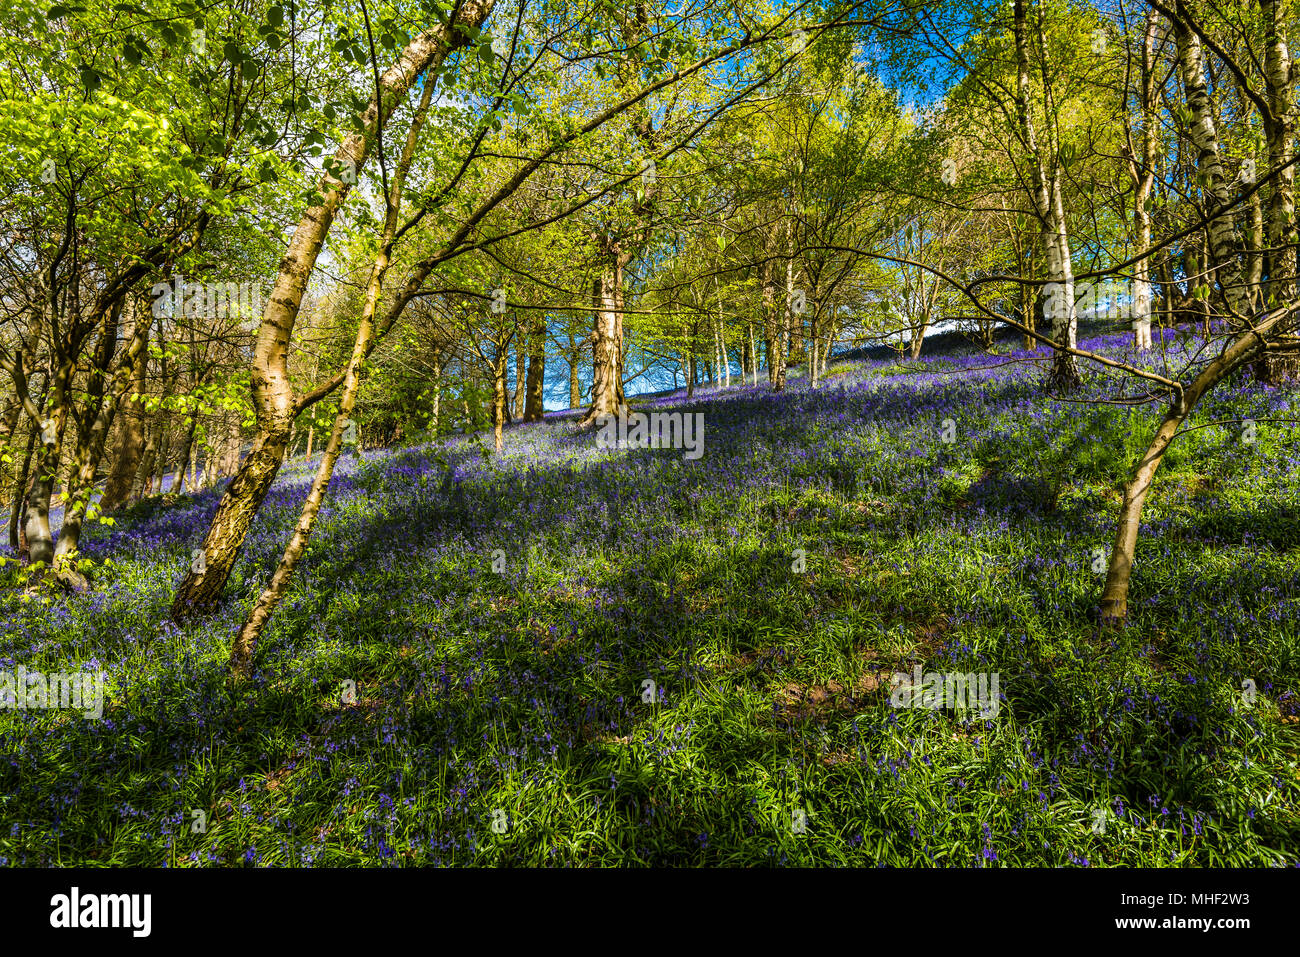 Carpet of woodland Bluebells caught in the spring sunshine, Emmetts Garden, Kent, UK - Stock Image